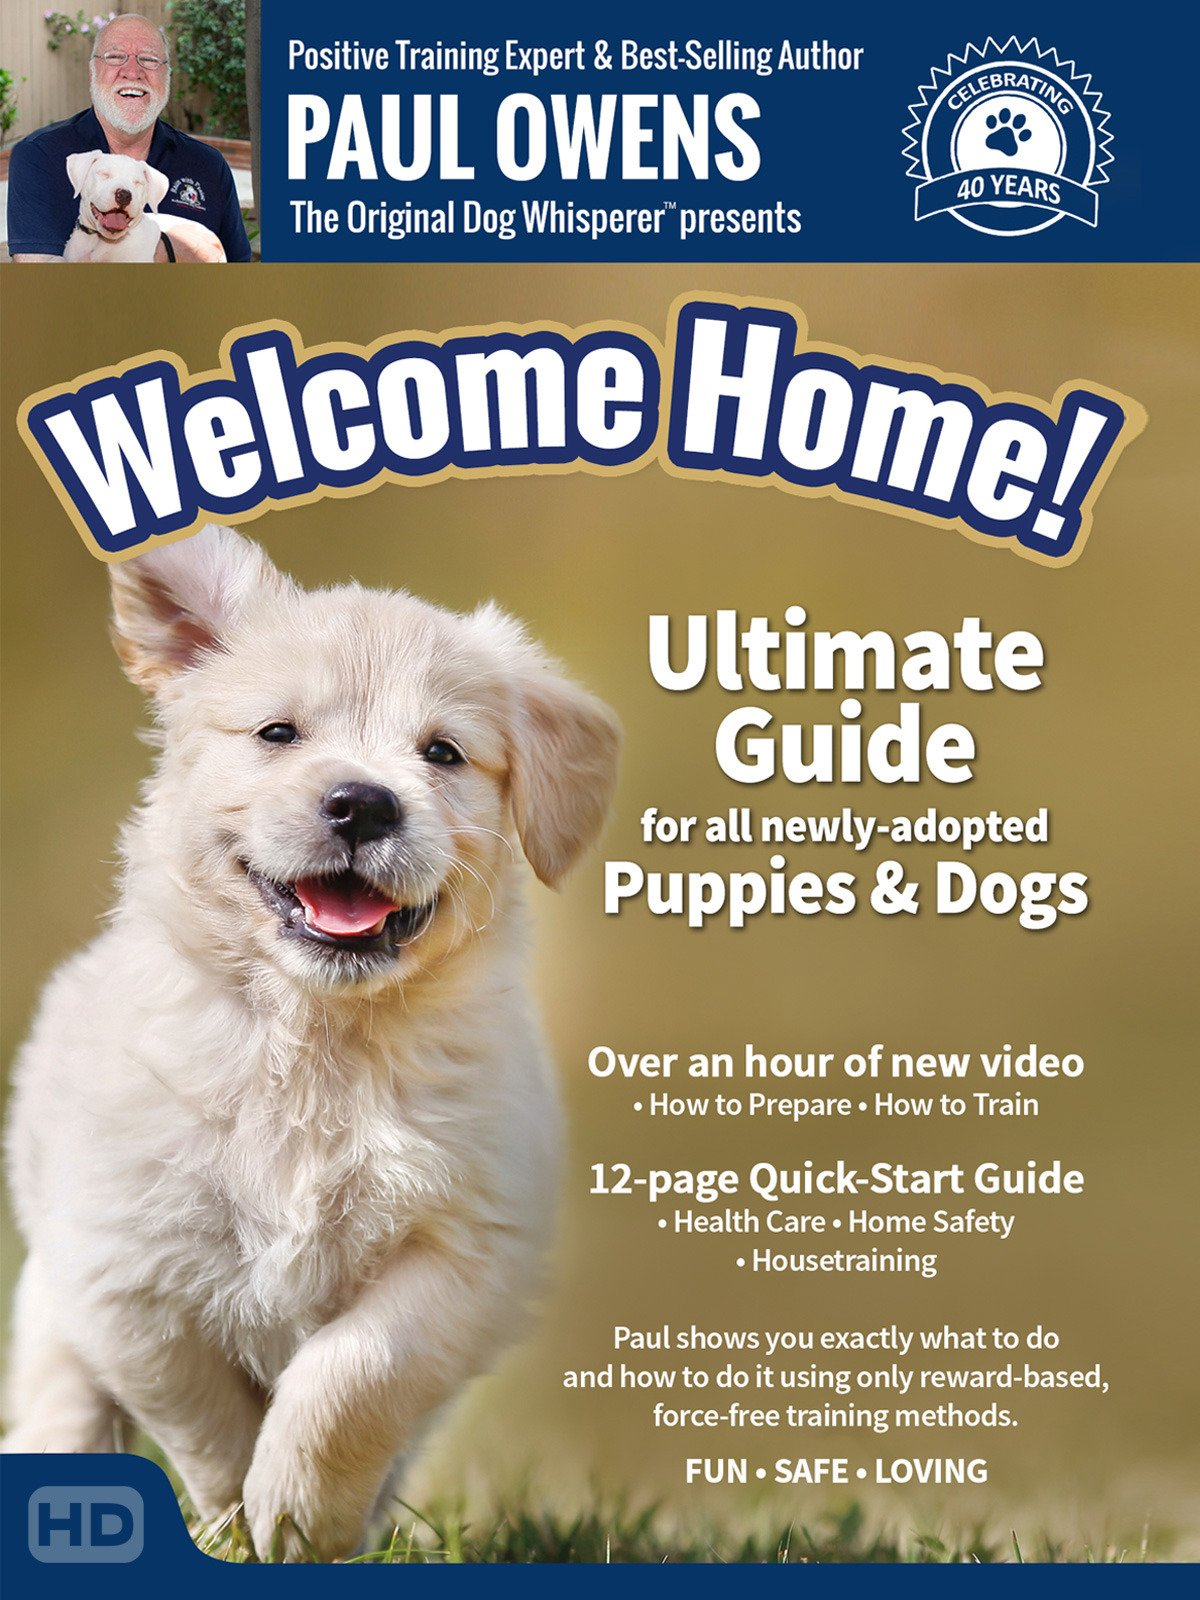 Paul Owens, The Original Dog Whisperer presents: Welcome Home! Ultimate Guide for all newly-adopted Puppies & Dogs on Amazon Prime Instant Video UK